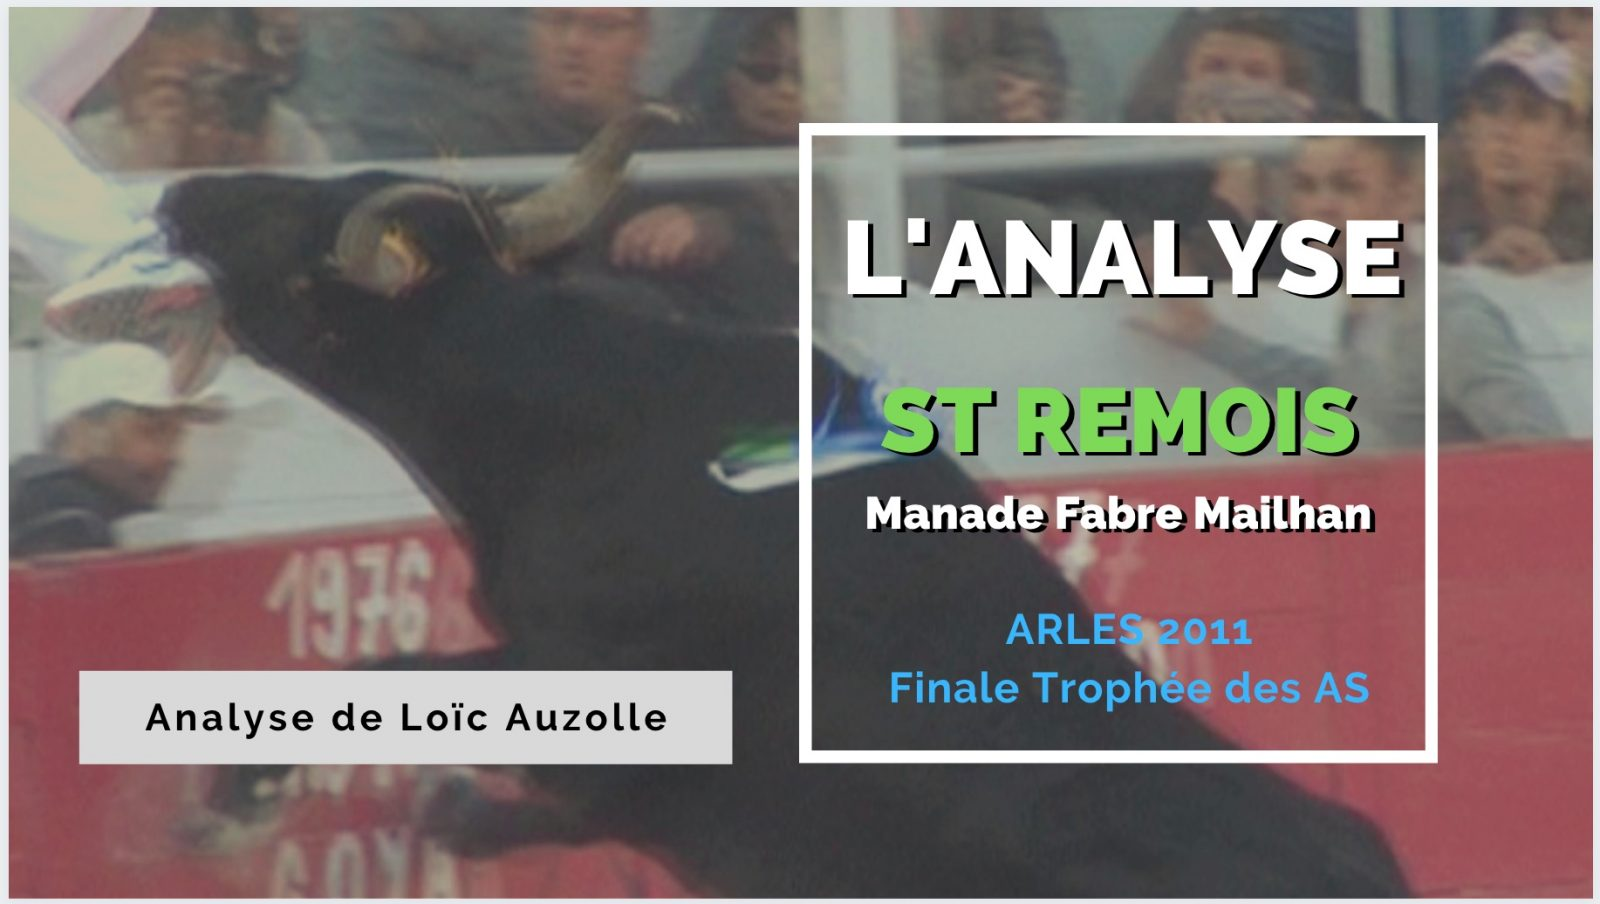 L'ANALYSE – St Remois (Manade Fabre Mailhan) – Arles 2011 – VIDEO